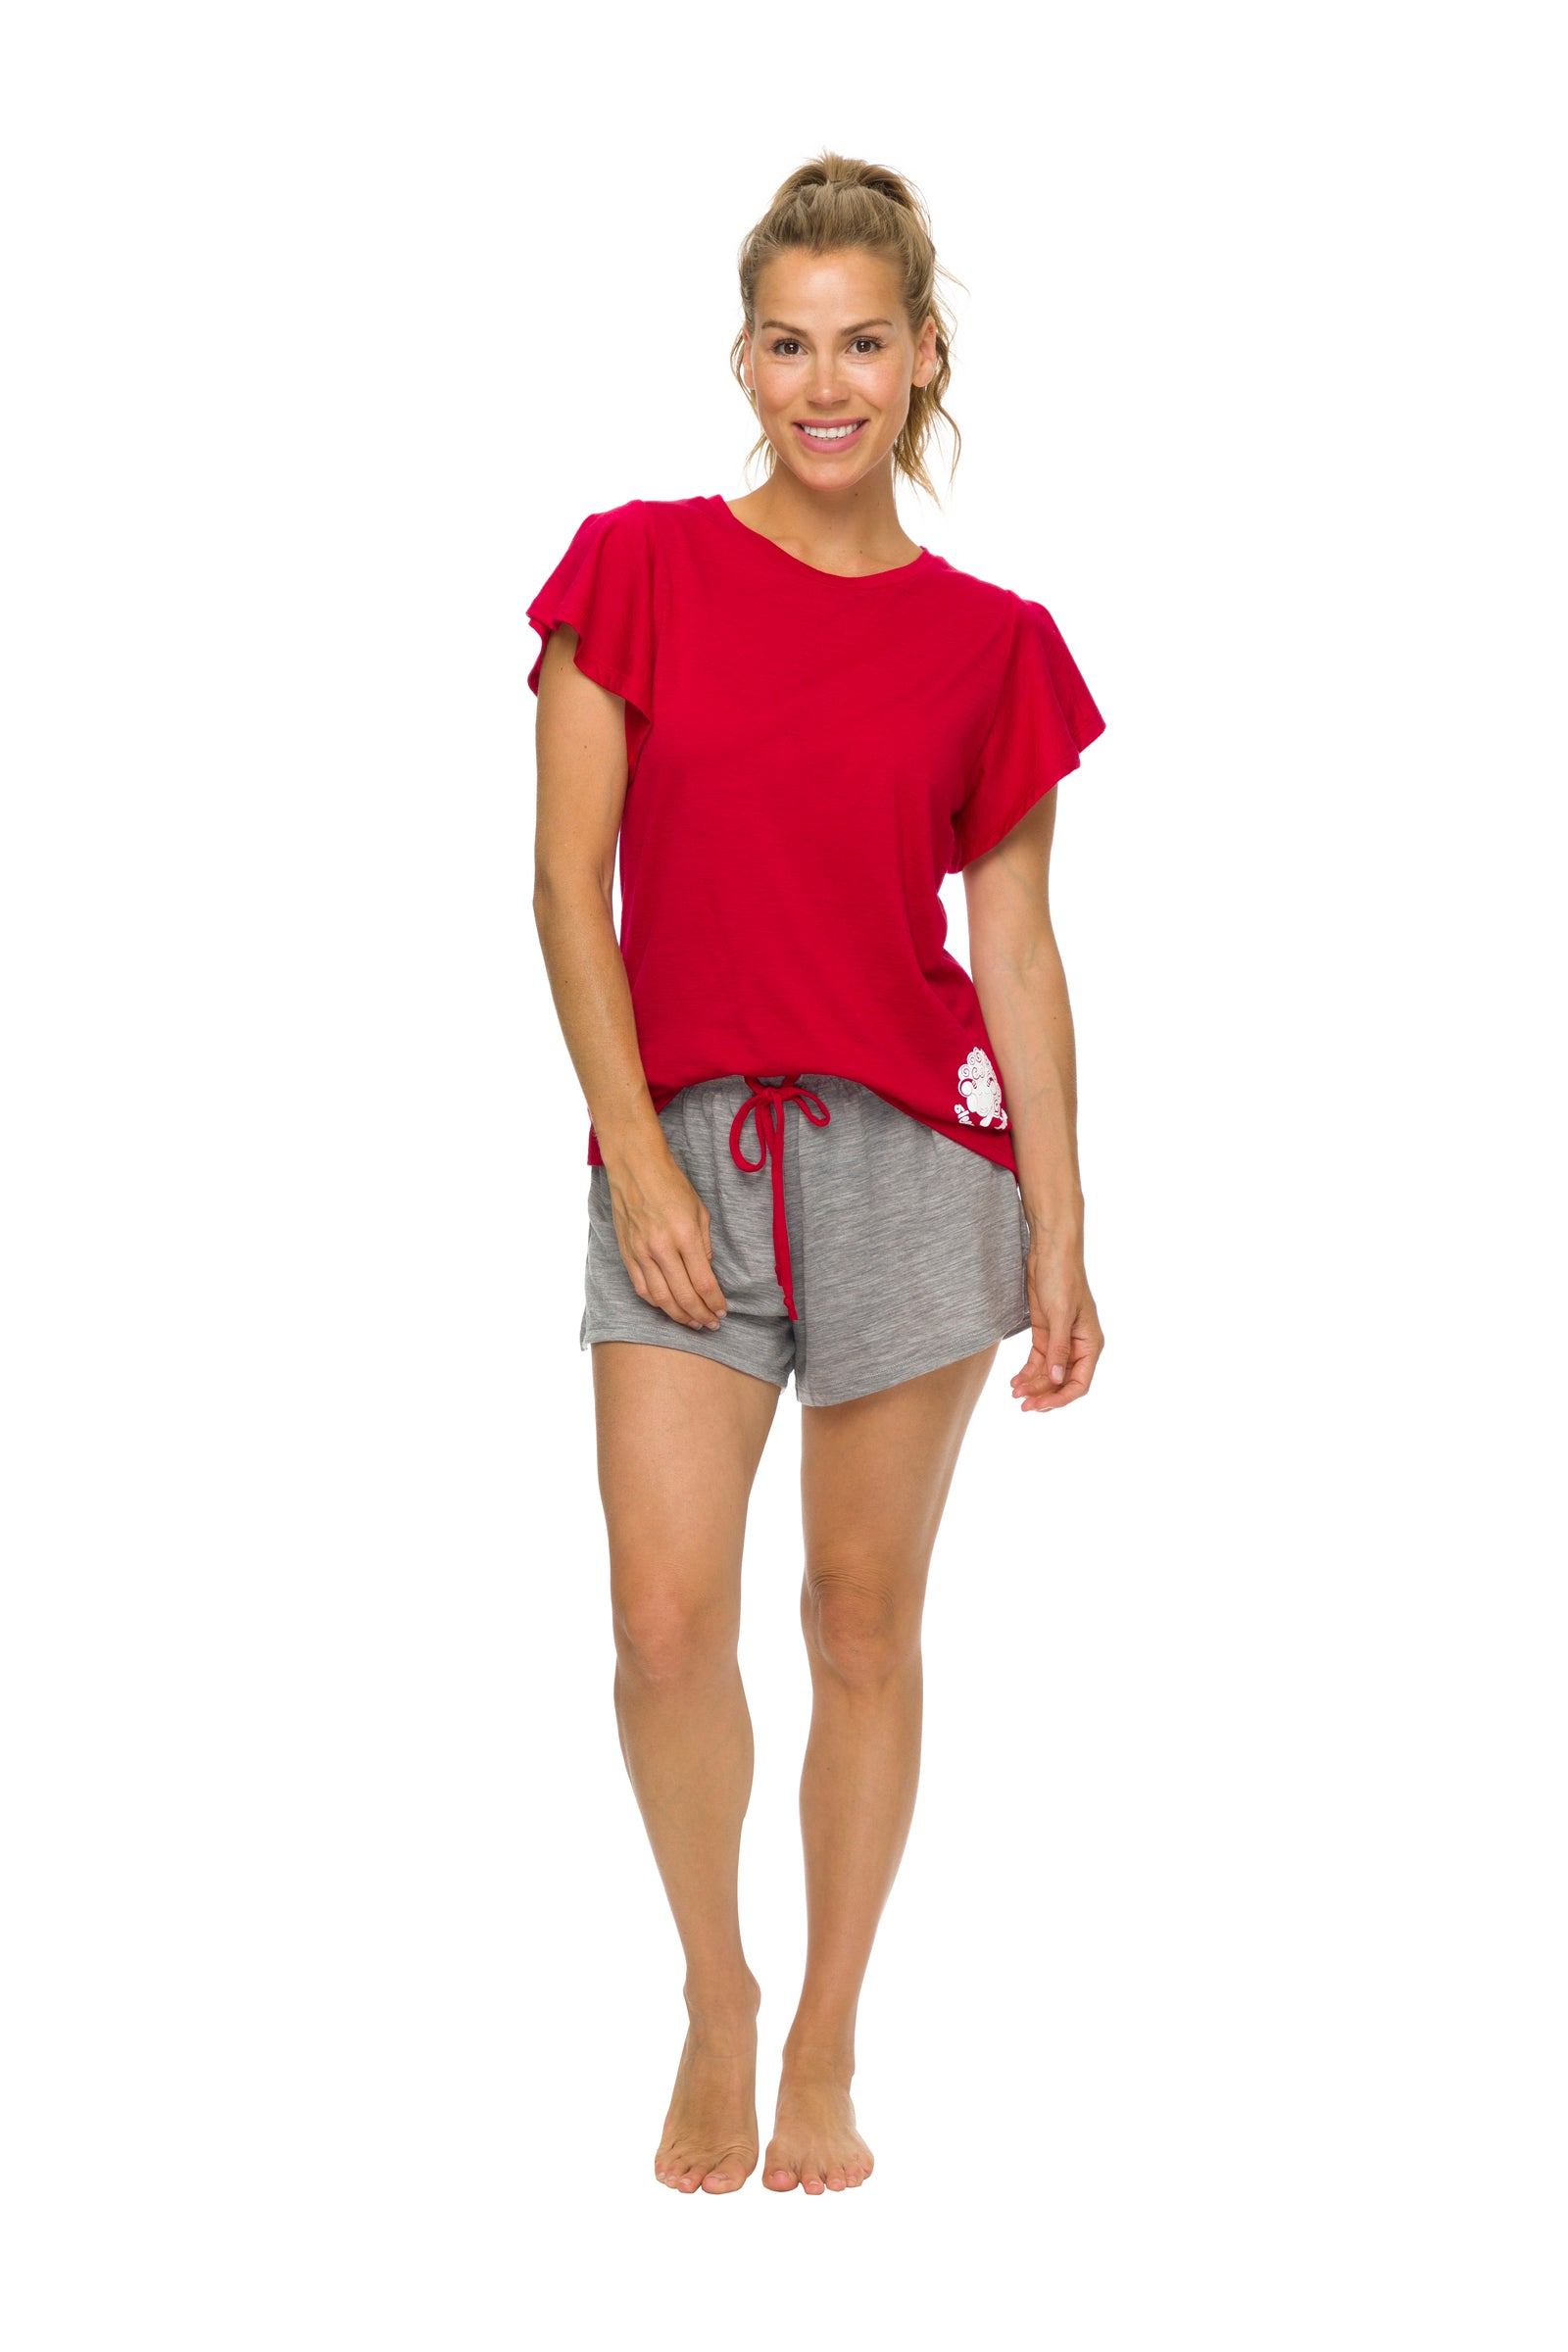 Women's Sleep Shorts | 100% Merino Wool Grey Marle